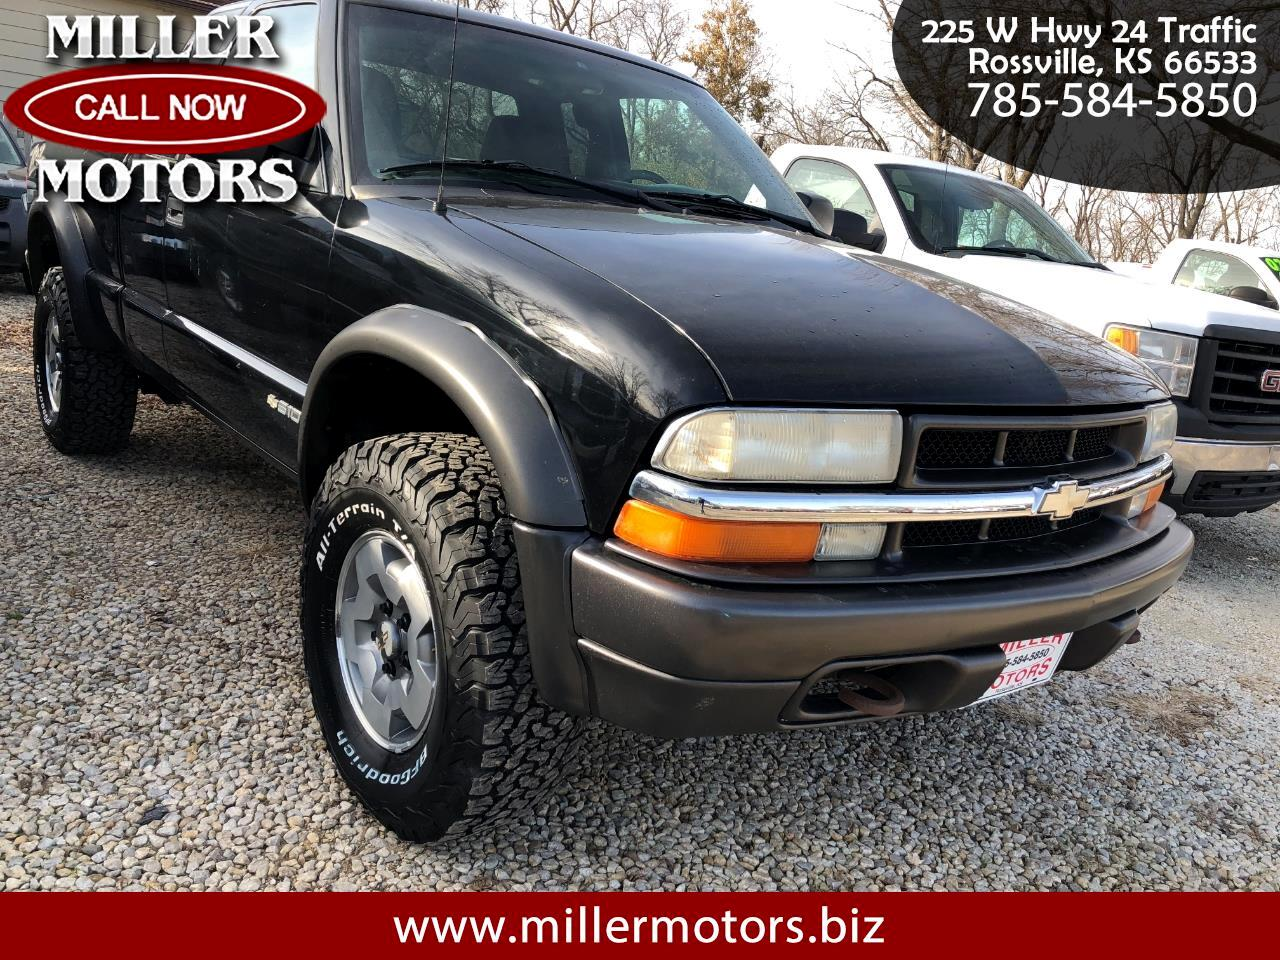 2003 Chevrolet S-10 Ext Cab 123